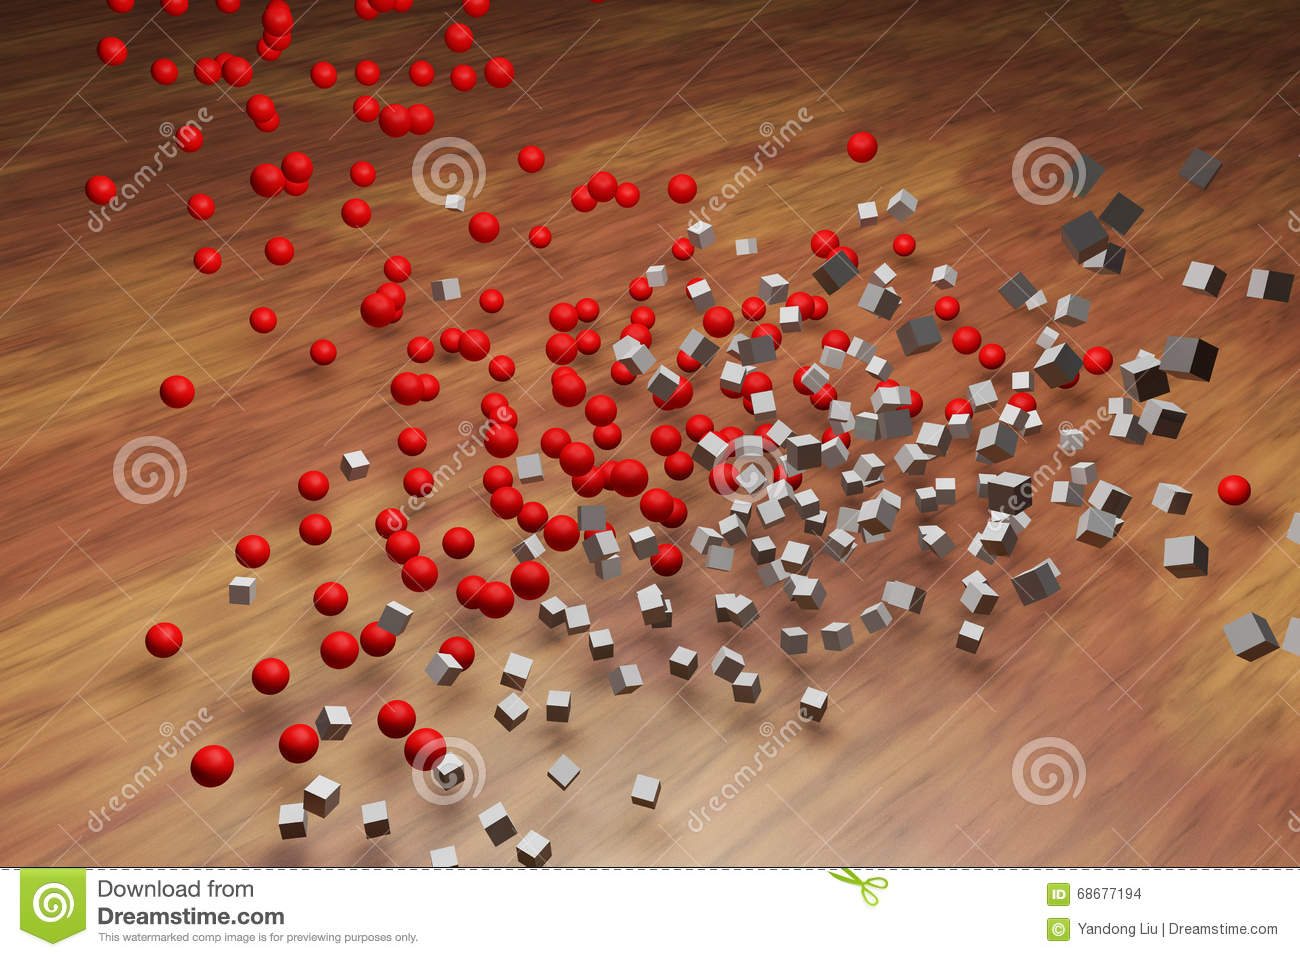 Collisions between objects stock illustration ...